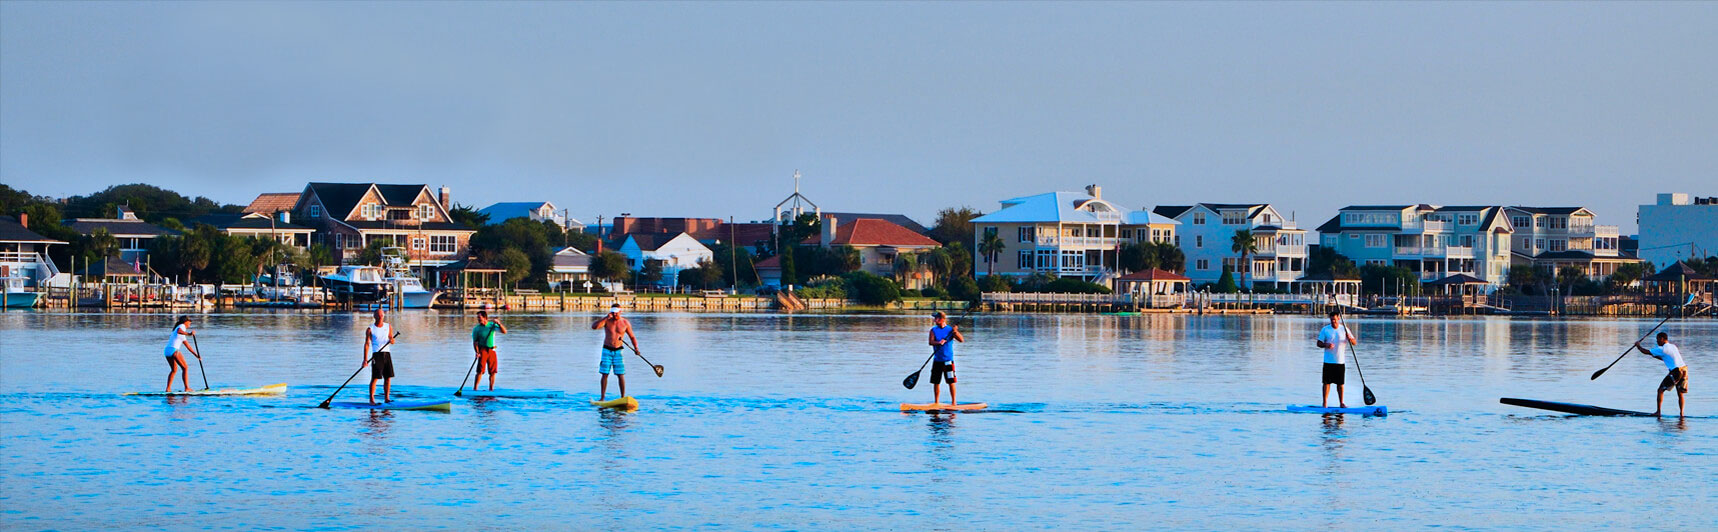 Stand Up Paddle board at the Blockade Runner